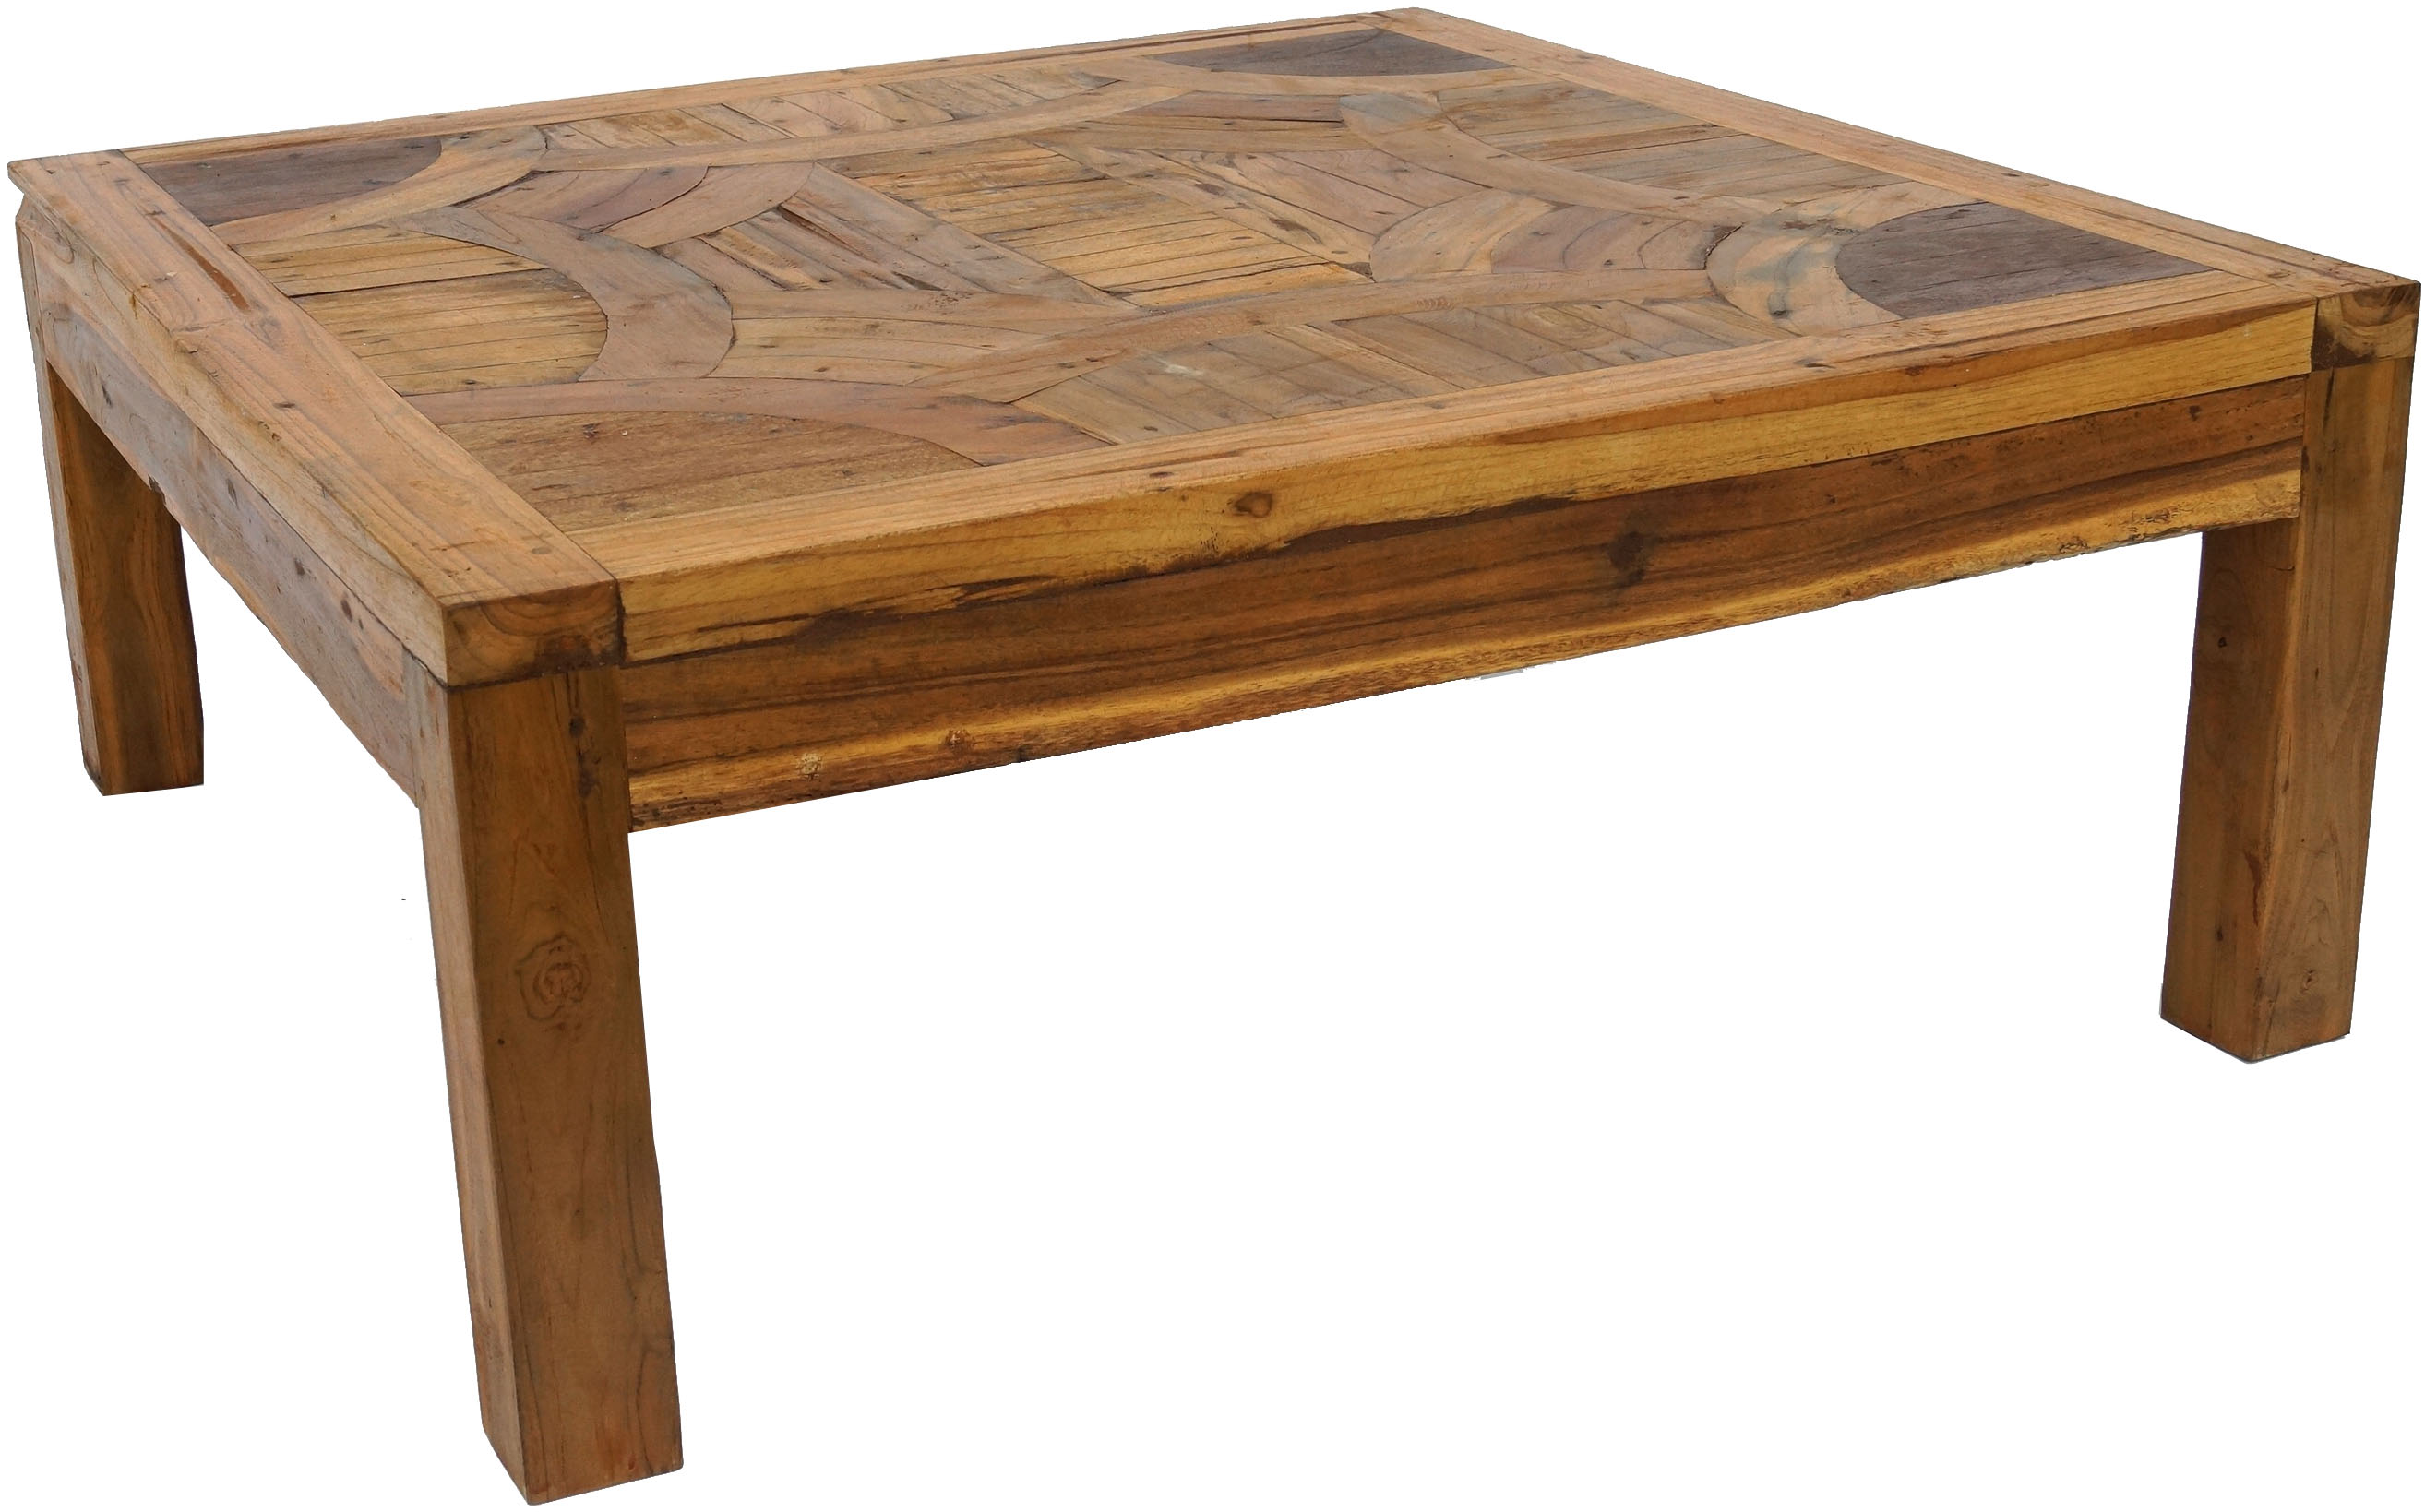 Couchtisch Goa Coffee Table Side Table Coffee Table With Inlays Of Recycled Teak Model 1 40x100x100 Cm